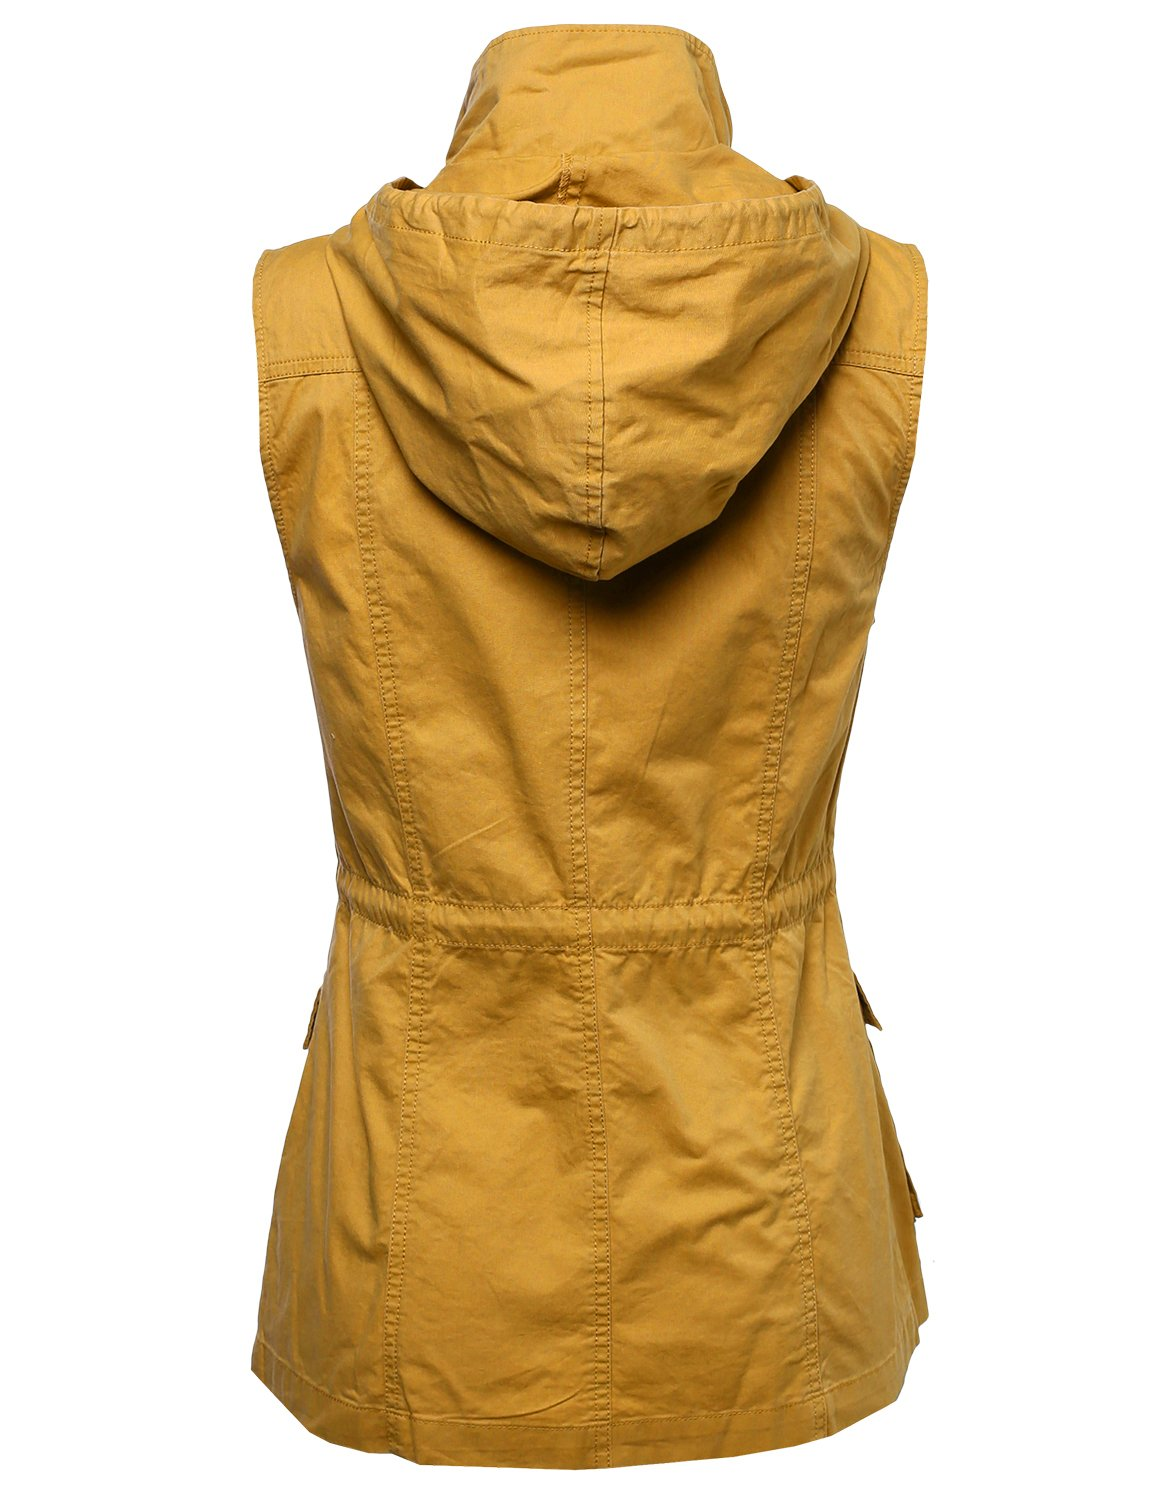 Sleeveless Safari Military Hooded Vest Jacket Mustard M by Made by Emma (Image #2)